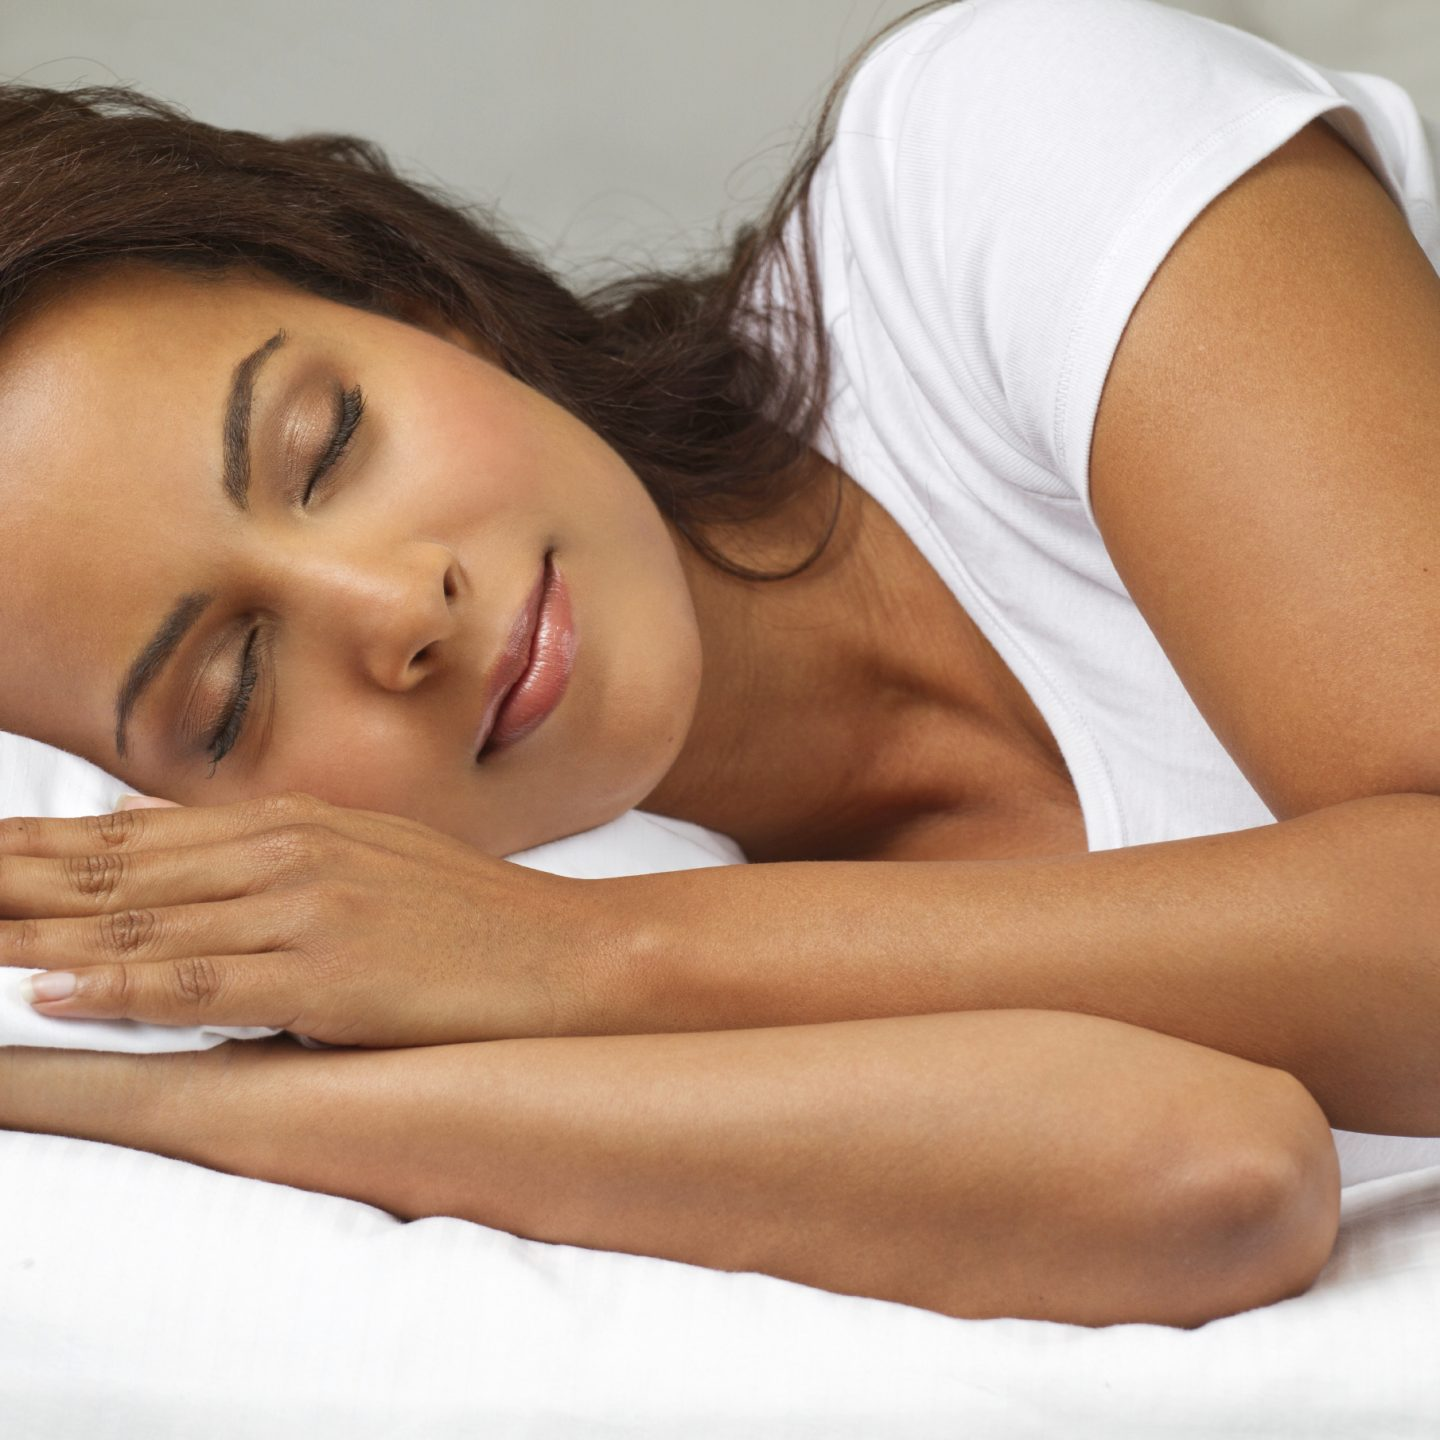 3 Things That Could Help You Sleep Better